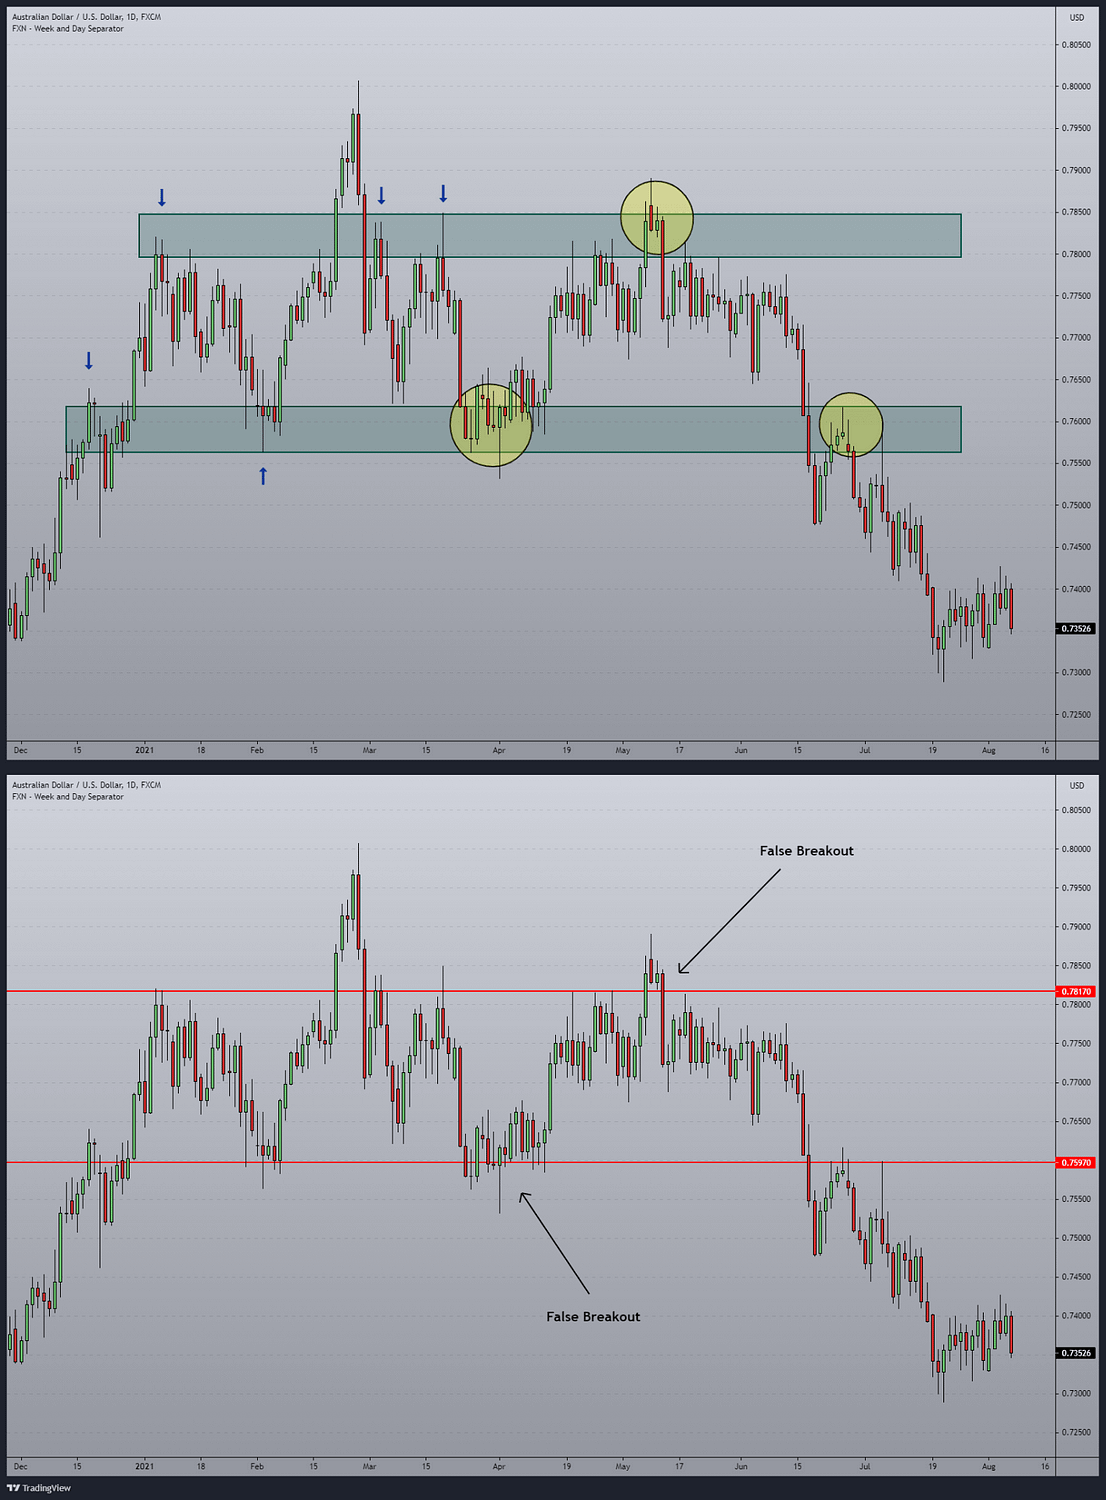 support and resistance should be zones in the chart and not the single line